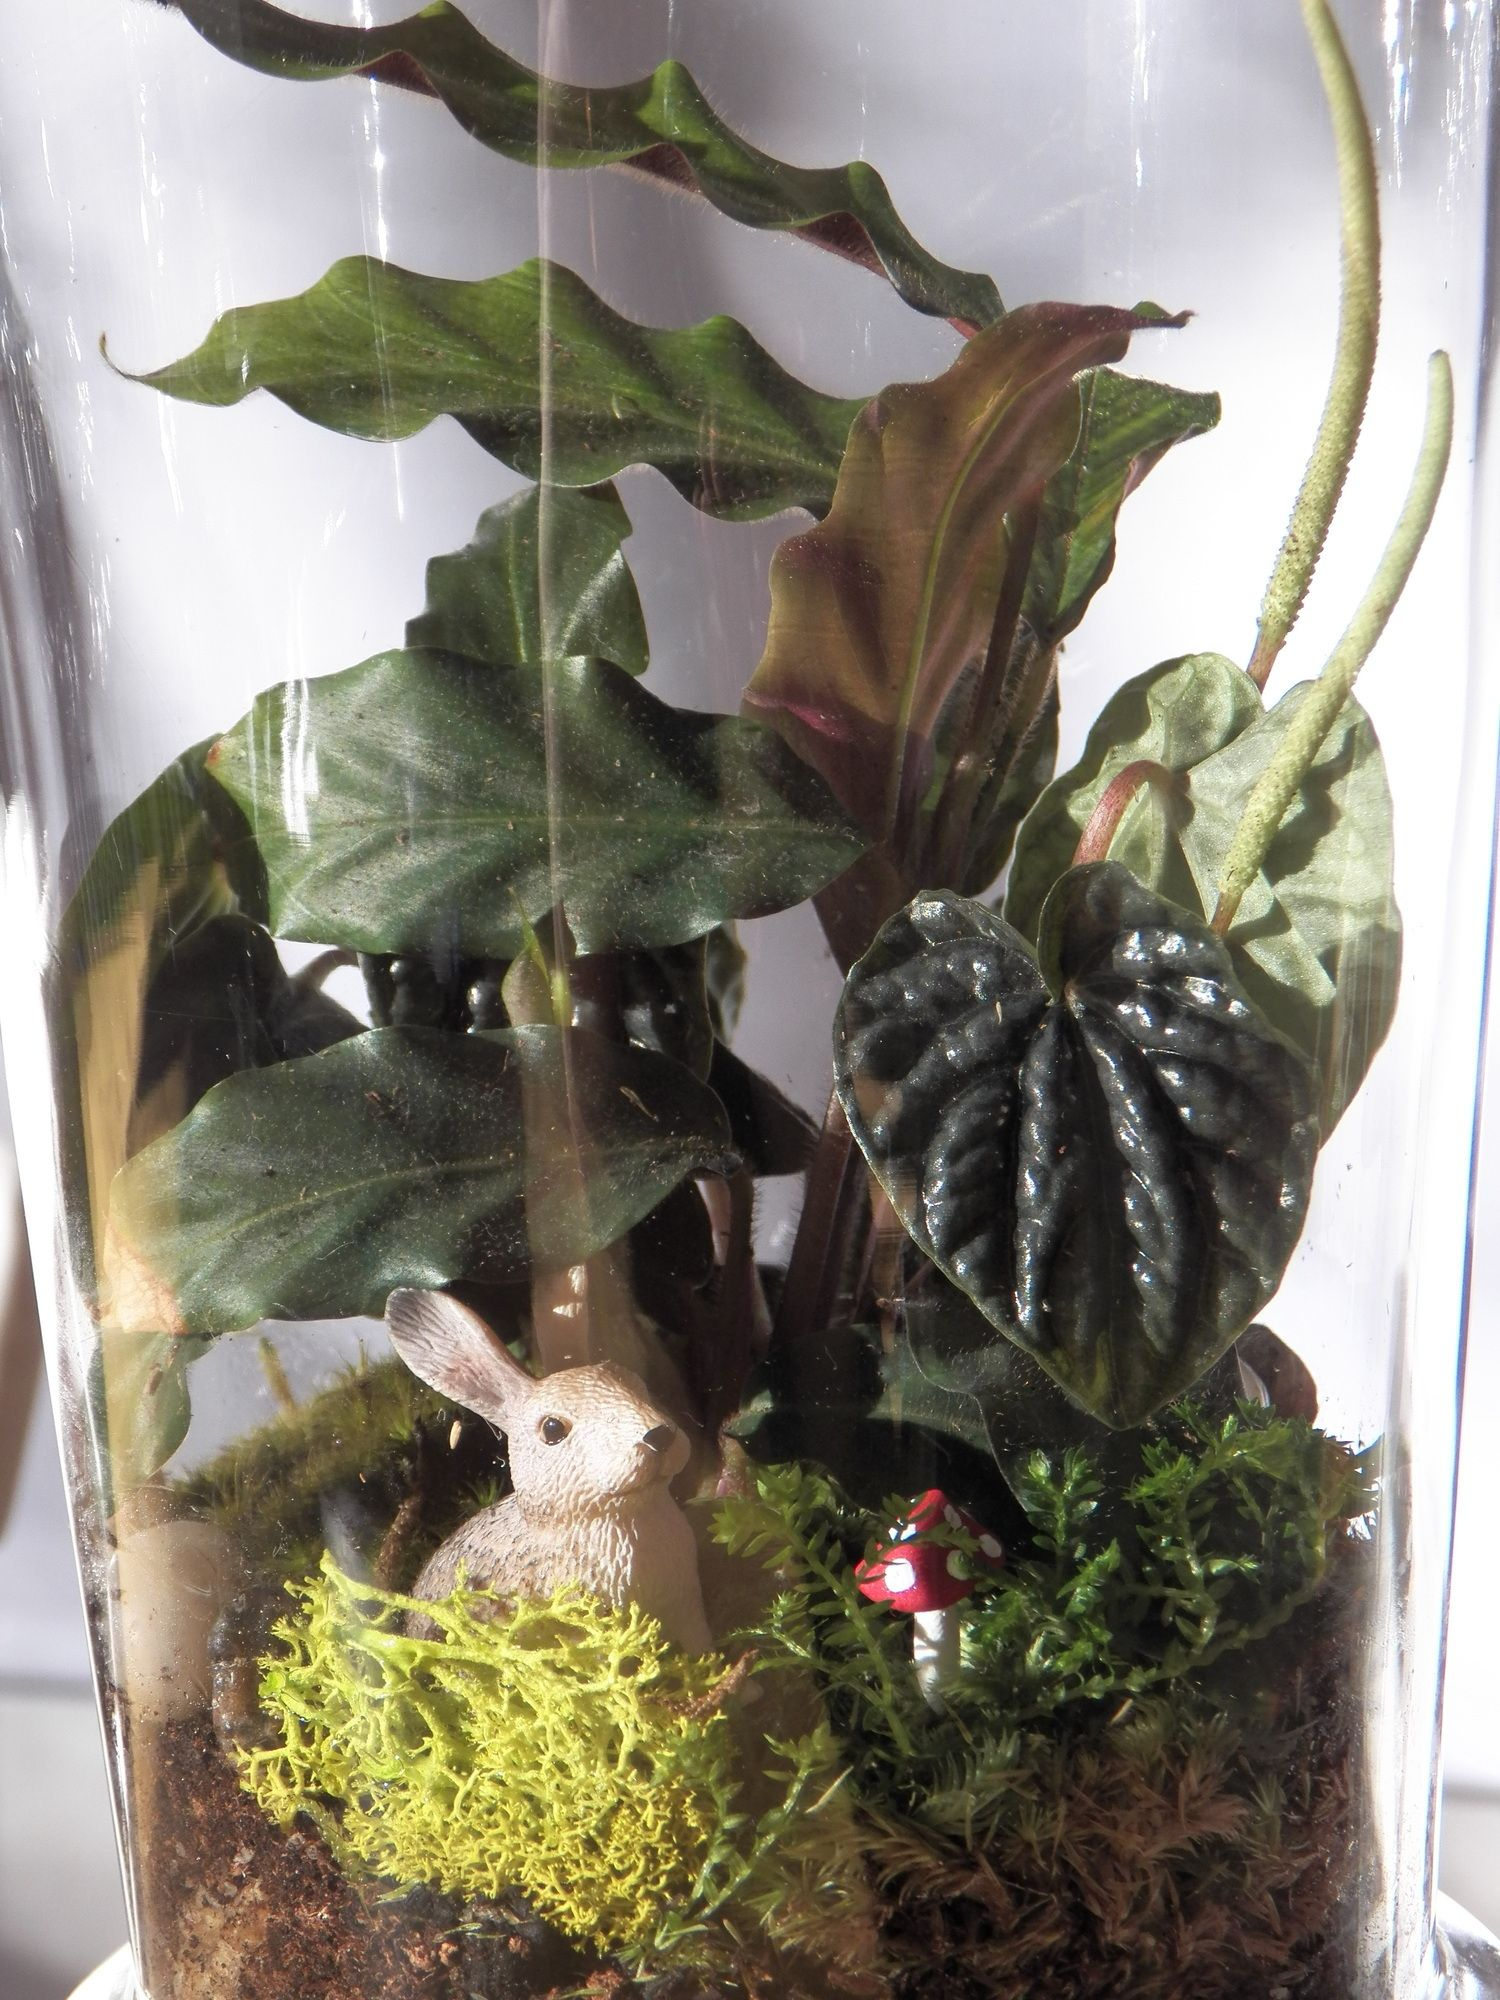 Celebrate Easter with a customised terrarium. Pictured is